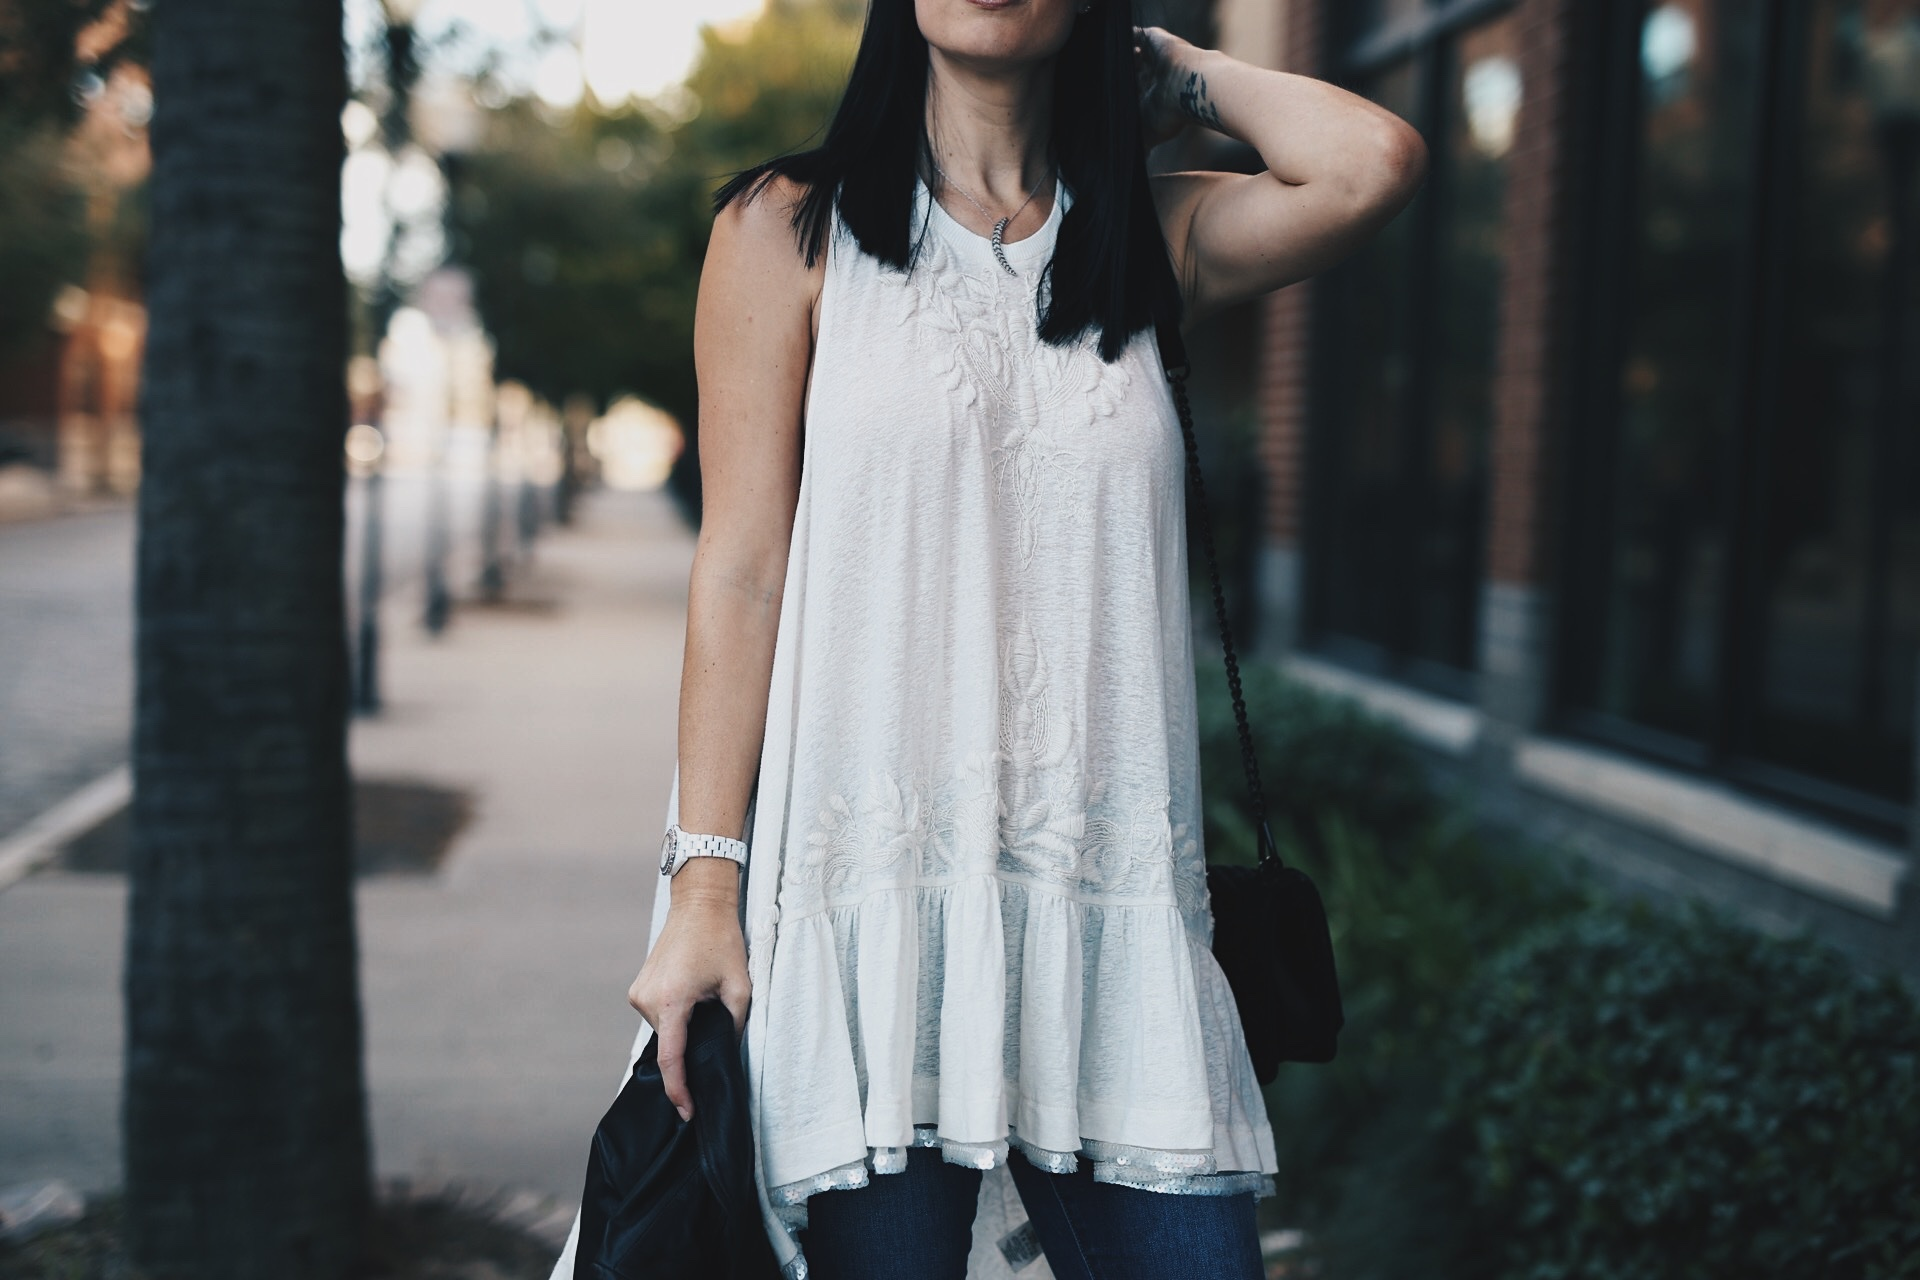 DTKAustin is sharing her favorite white free people top shot while in New Orleans. Ashley is carrying a Rebecca Minkoff Love bag and wearing Vince Camuto OTK Boots. Click to get more info and pics!